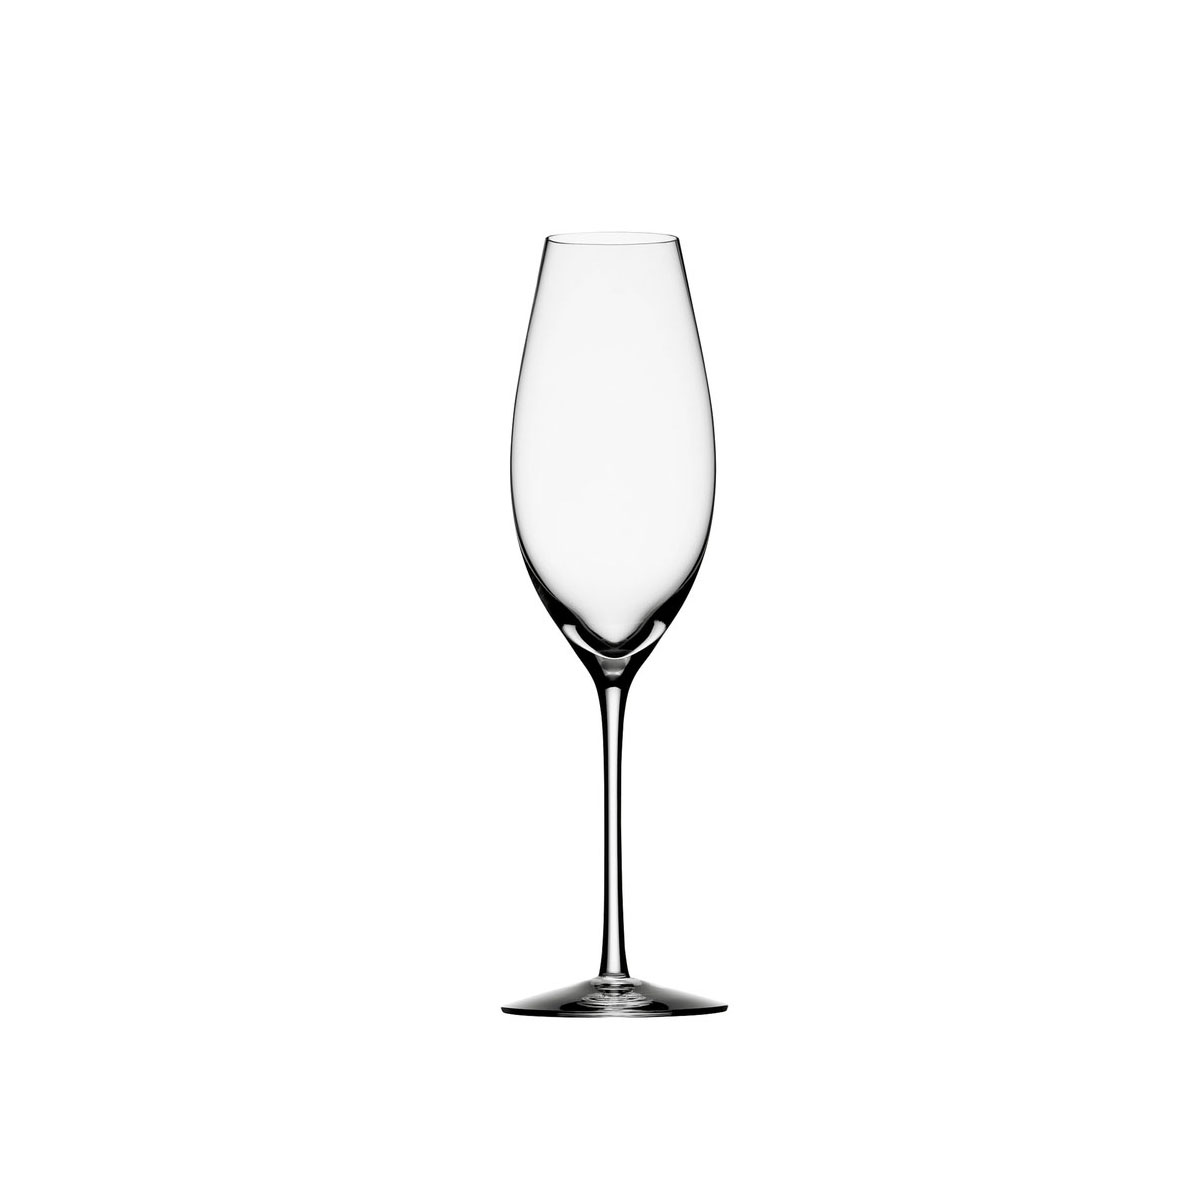 Orrefors Crystal, Difference Sparkling Crystal Wine Single